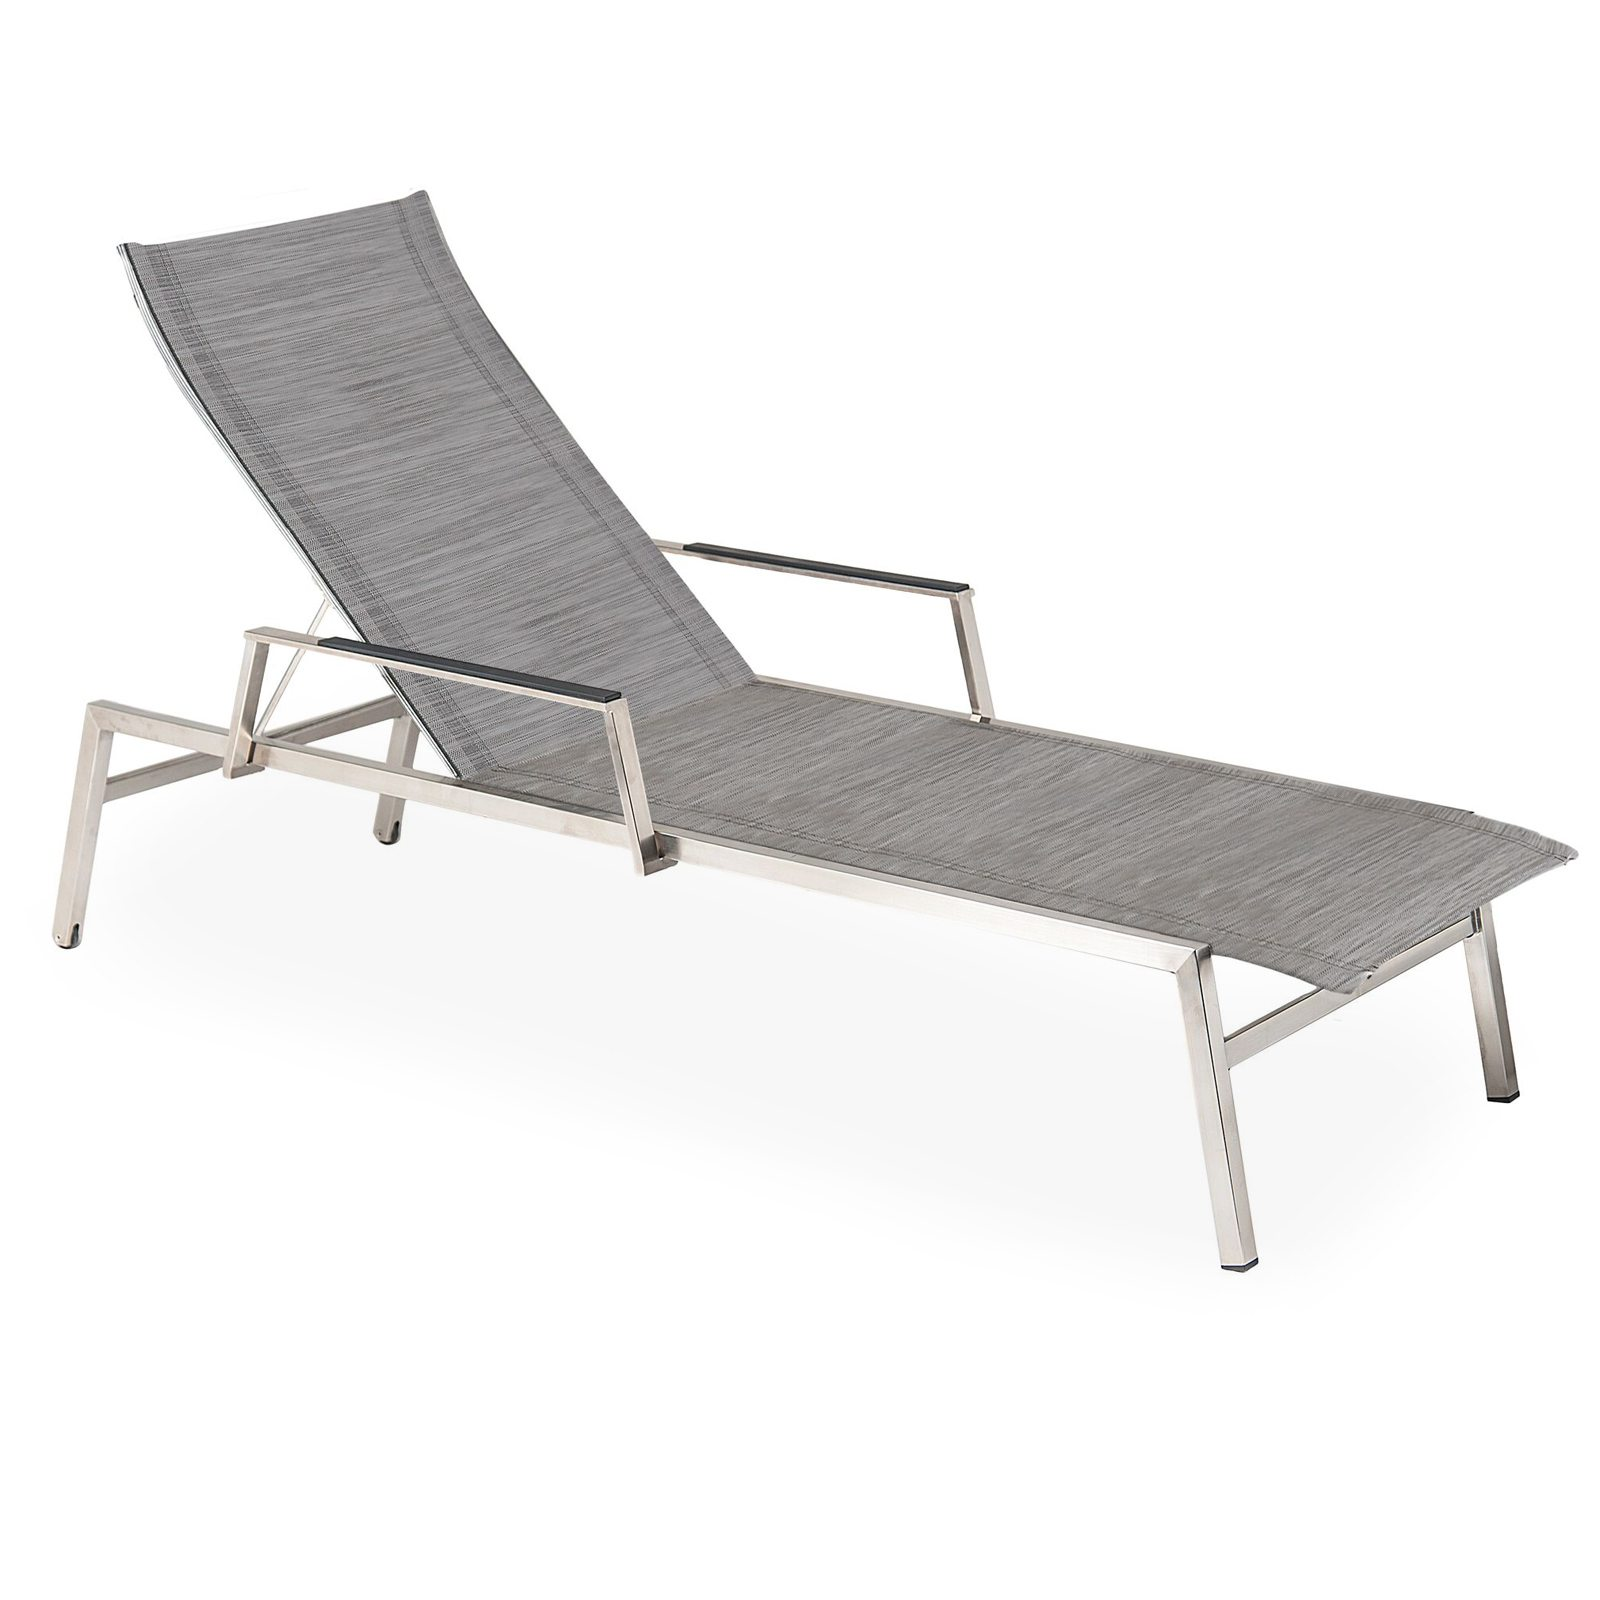 Livorno-Outdoor-Adjustable-Sunbed-by-Bonham-&-Bonham